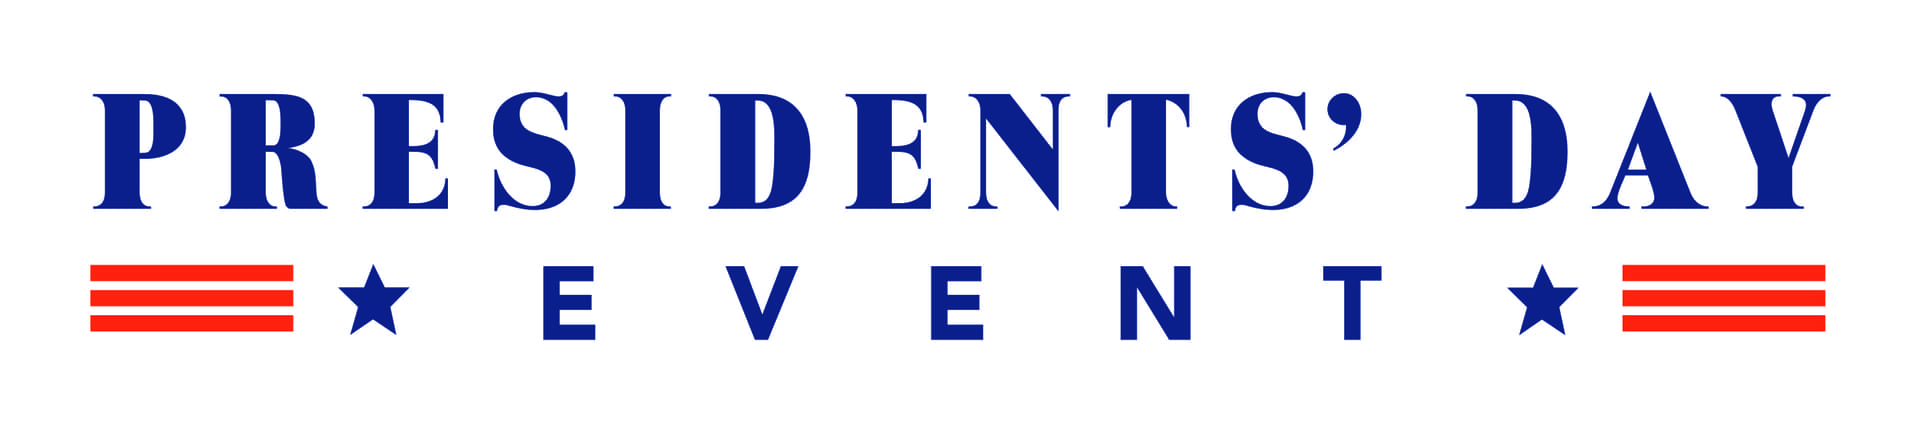 President's Day Event Logo